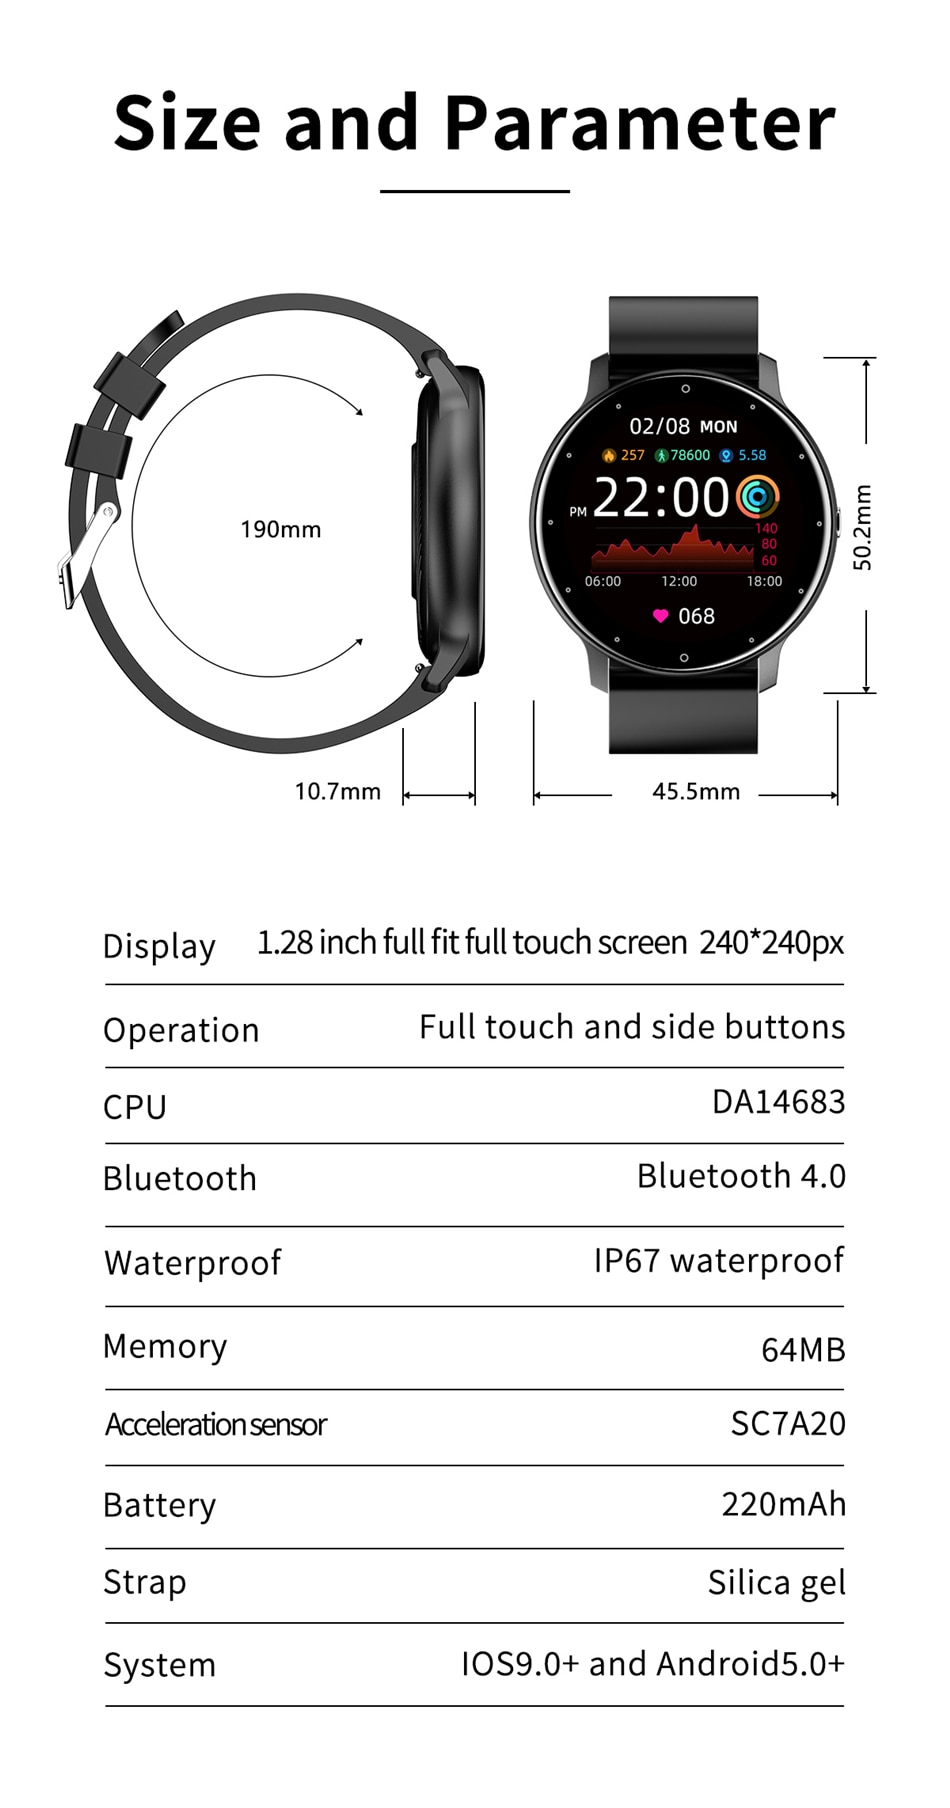 H8999b60b78954e9ca1fc8f75709af5b4T - LIGE 2021 New Smart Watch Men Full Touch Screen Sport Fitness Watch IP67 Waterproof Bluetooth For Android ios smartwatch Men box